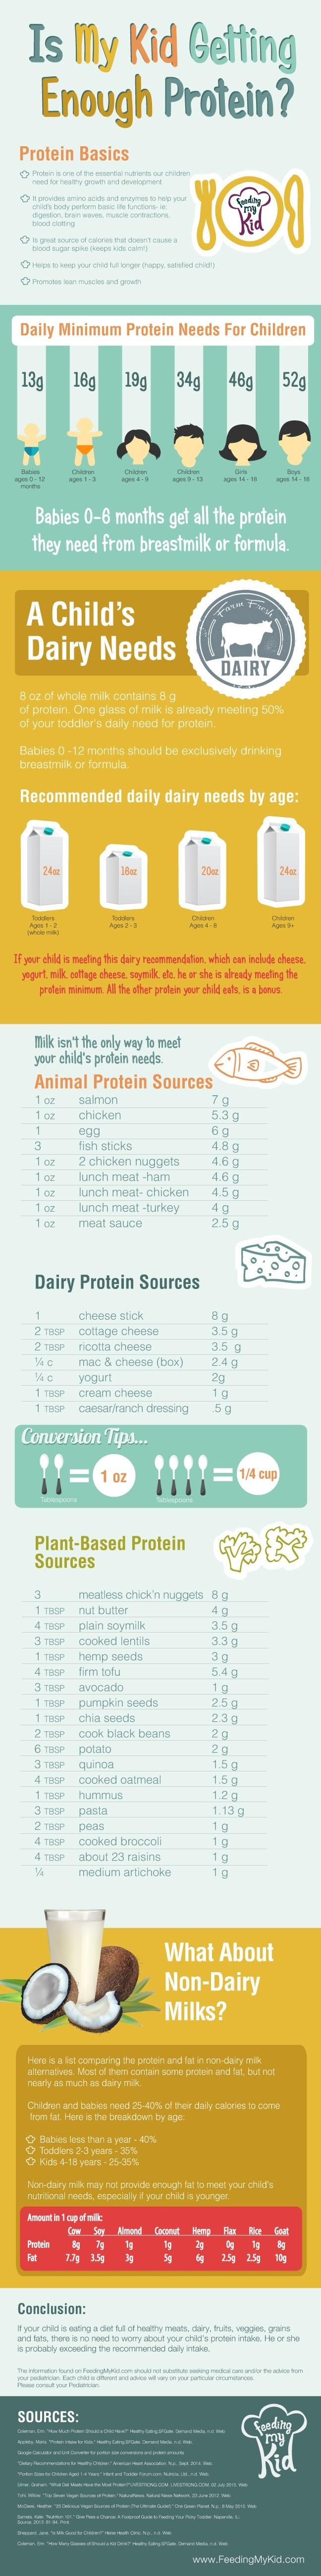 Is it enough protein for my child# infographic